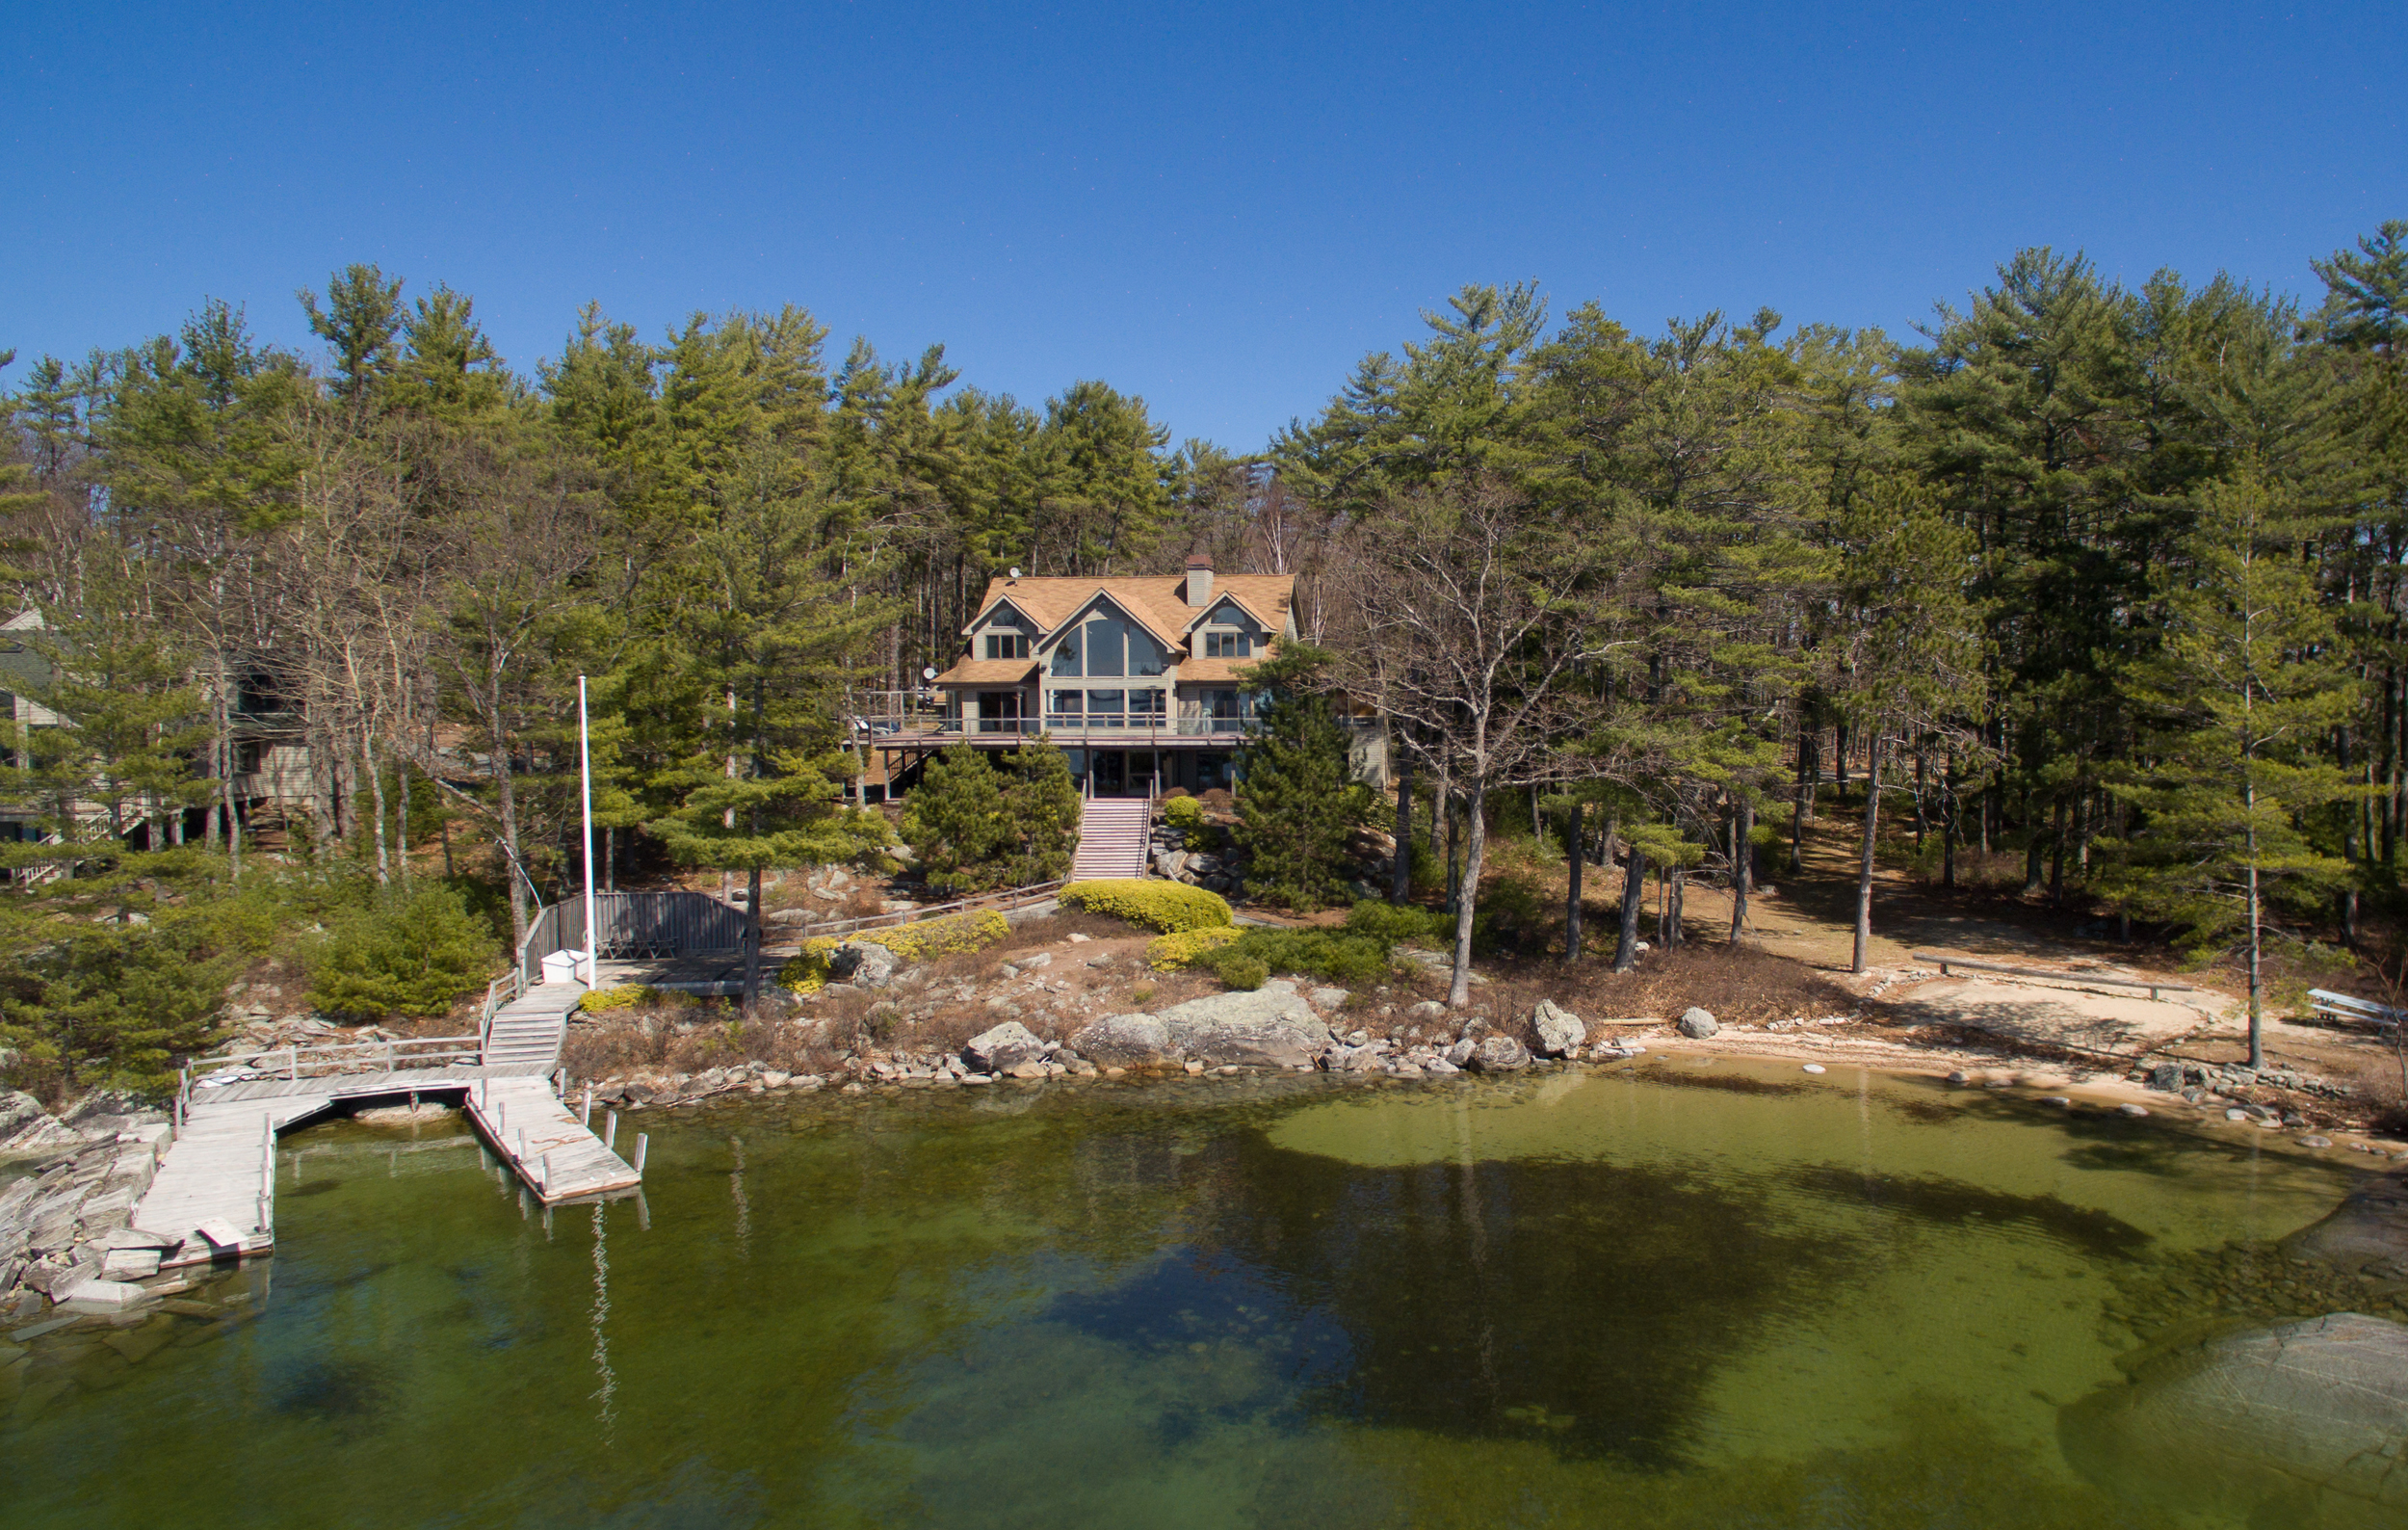 Single Family Home for Sale at Lake Winnipesaukee Retreat with Panoramic Views 200 Windermere Rd Moultonborough, New Hampshire, 03254 United States